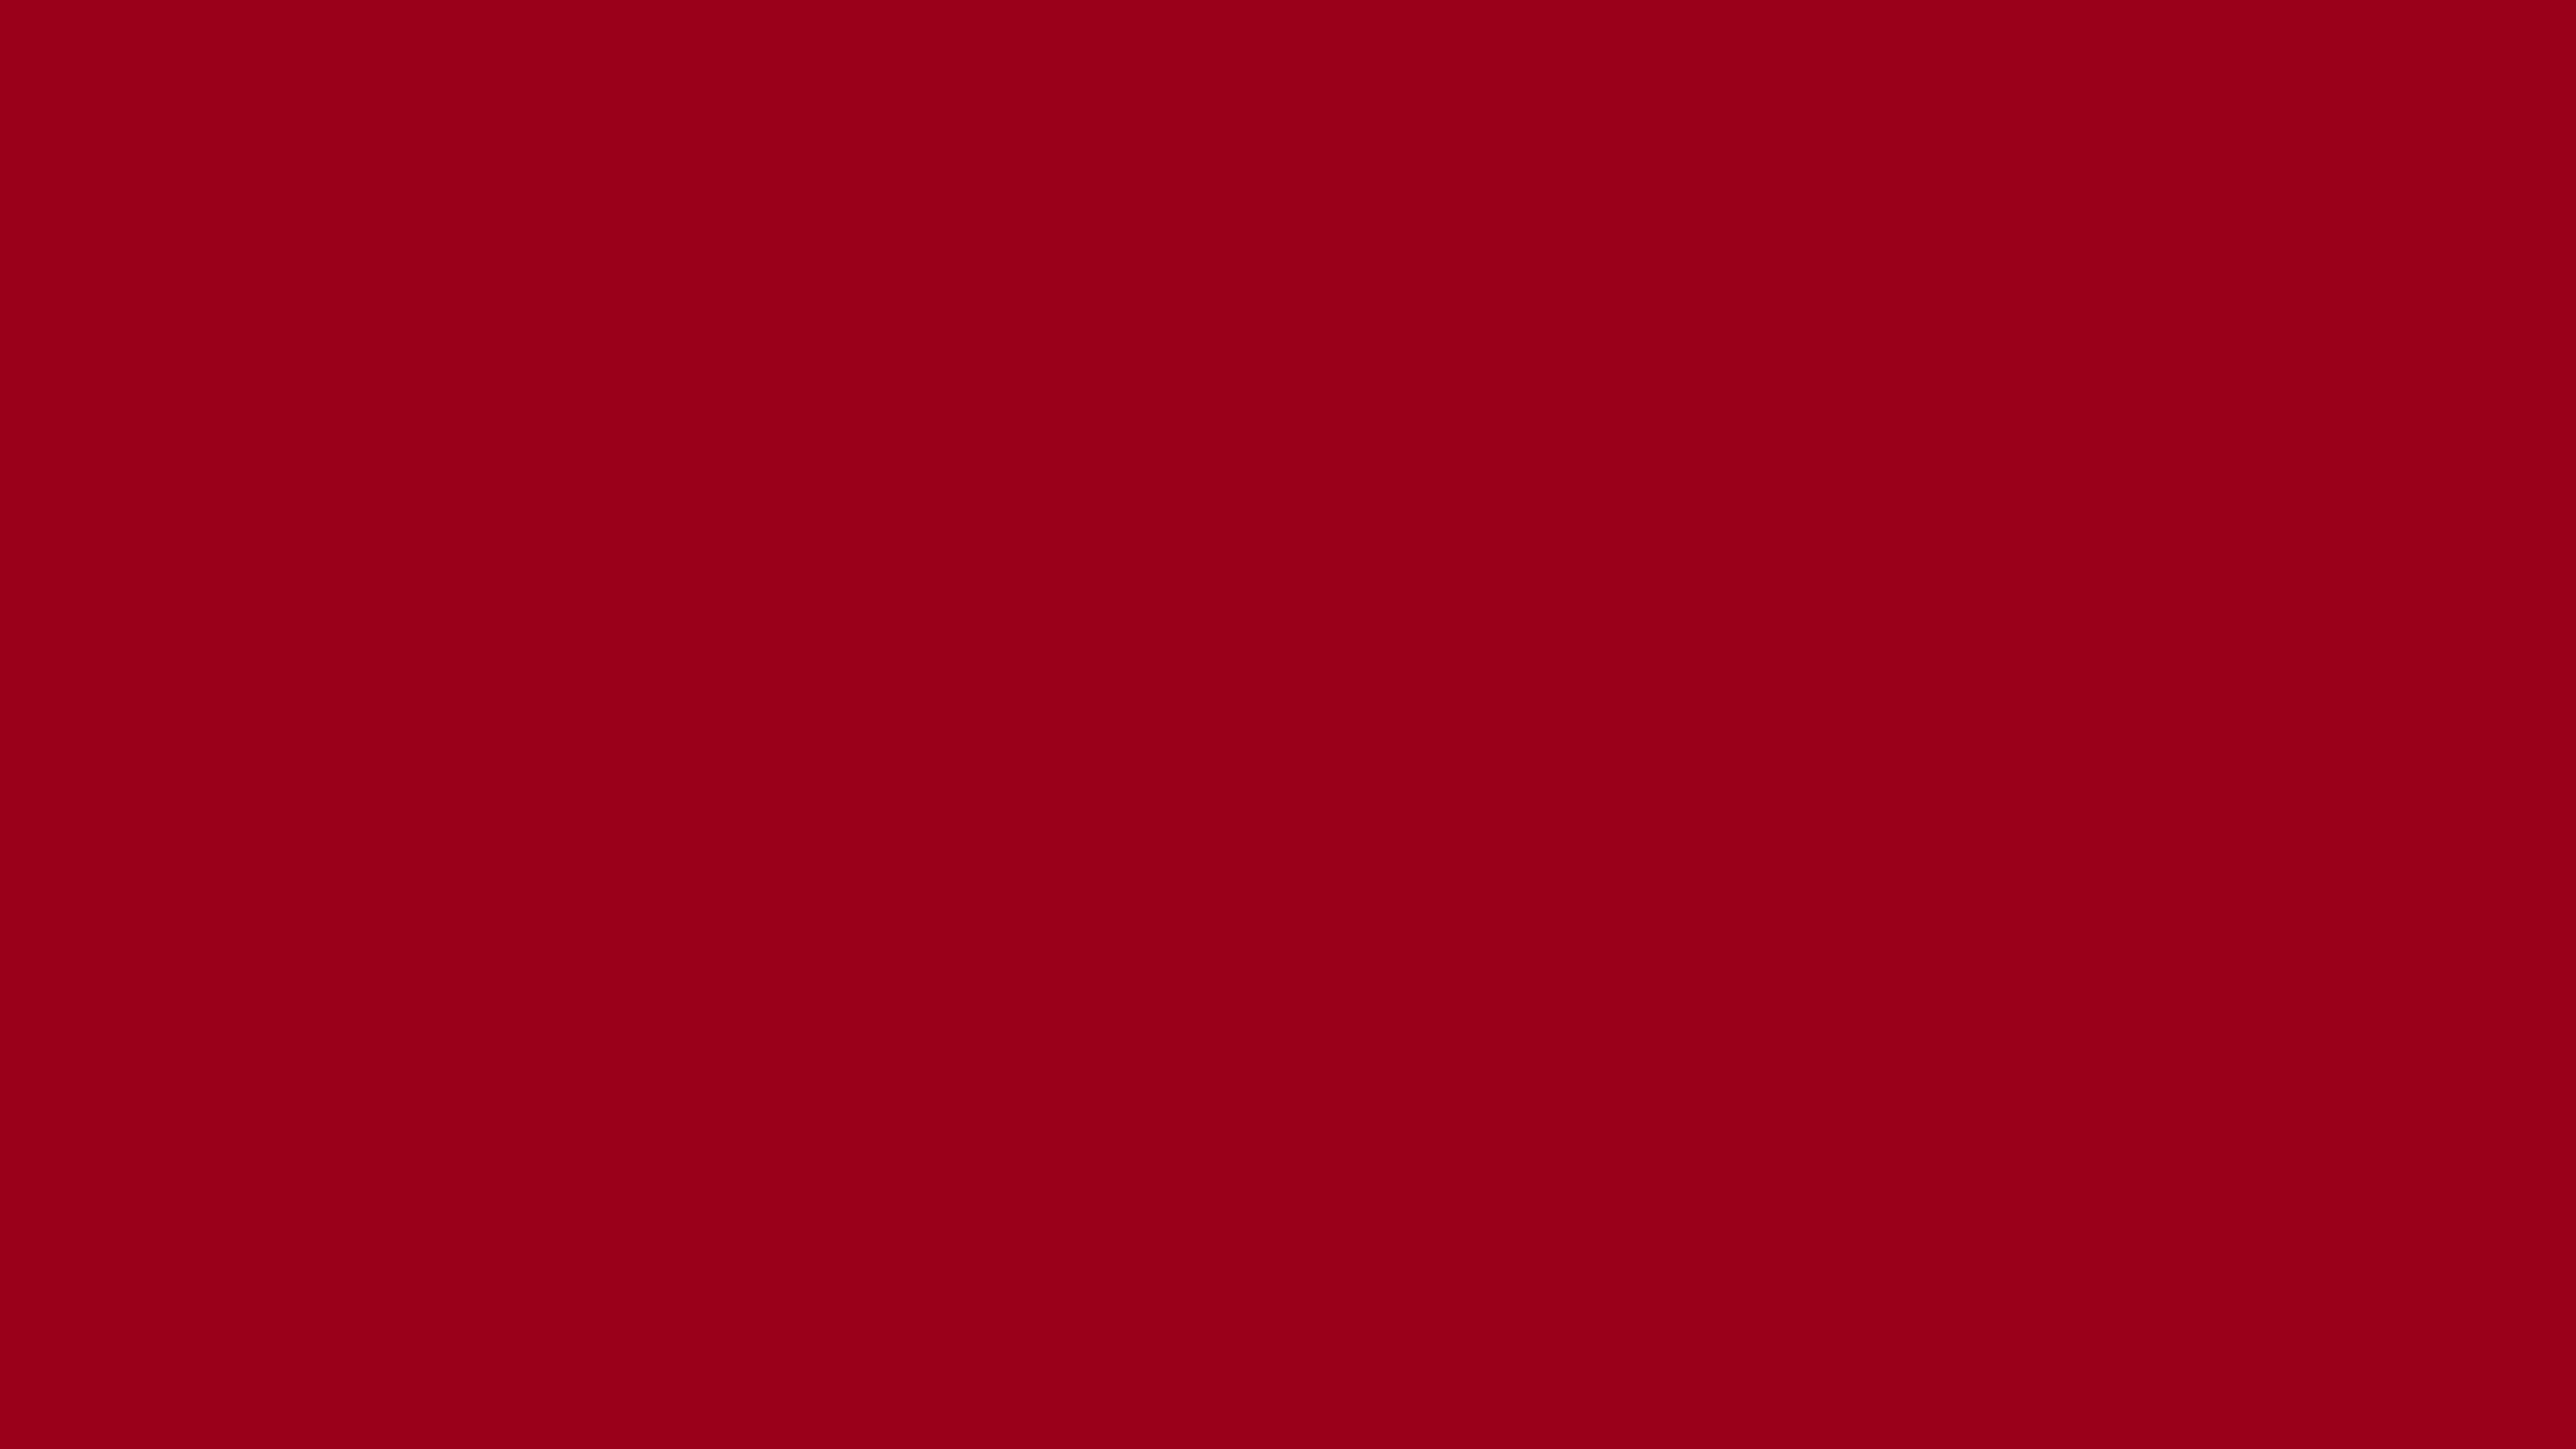 4096x2304 Carmine Solid Color Background